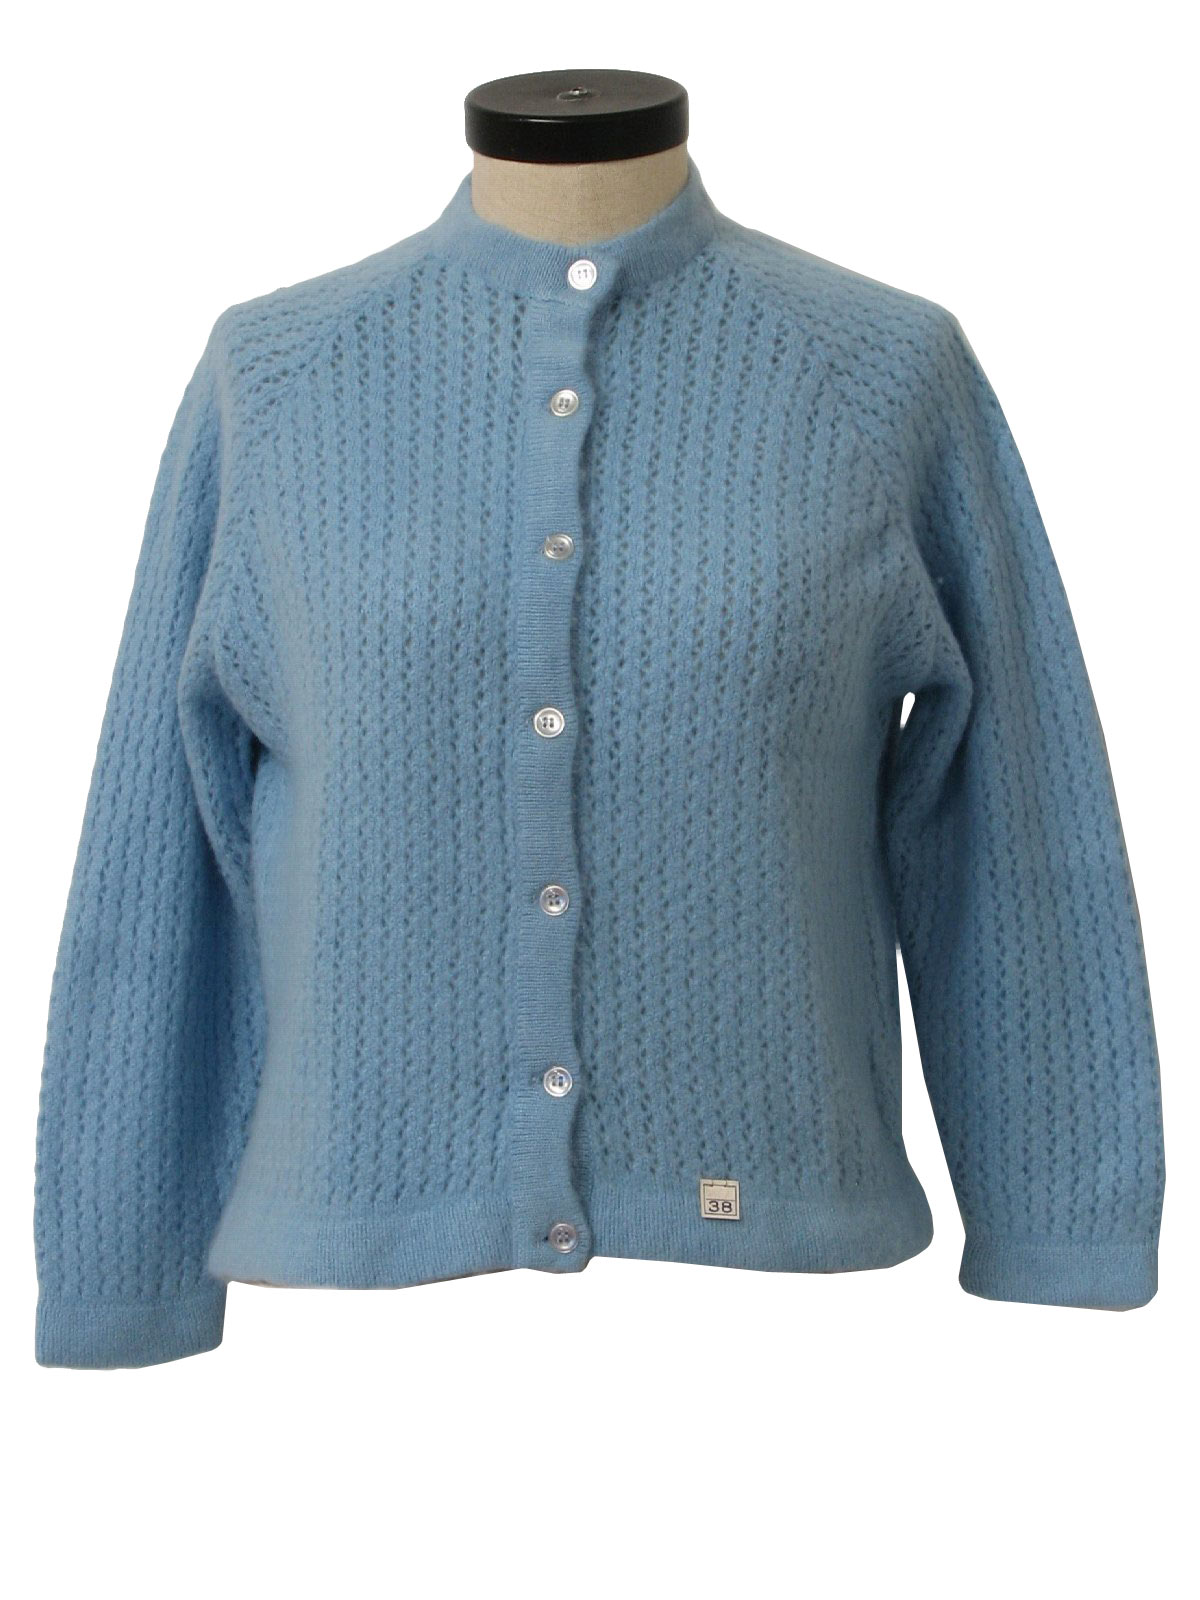 1960's Retro Caridgan Sweater: Early 60s -Colebrook 4-Ply- Womens ...